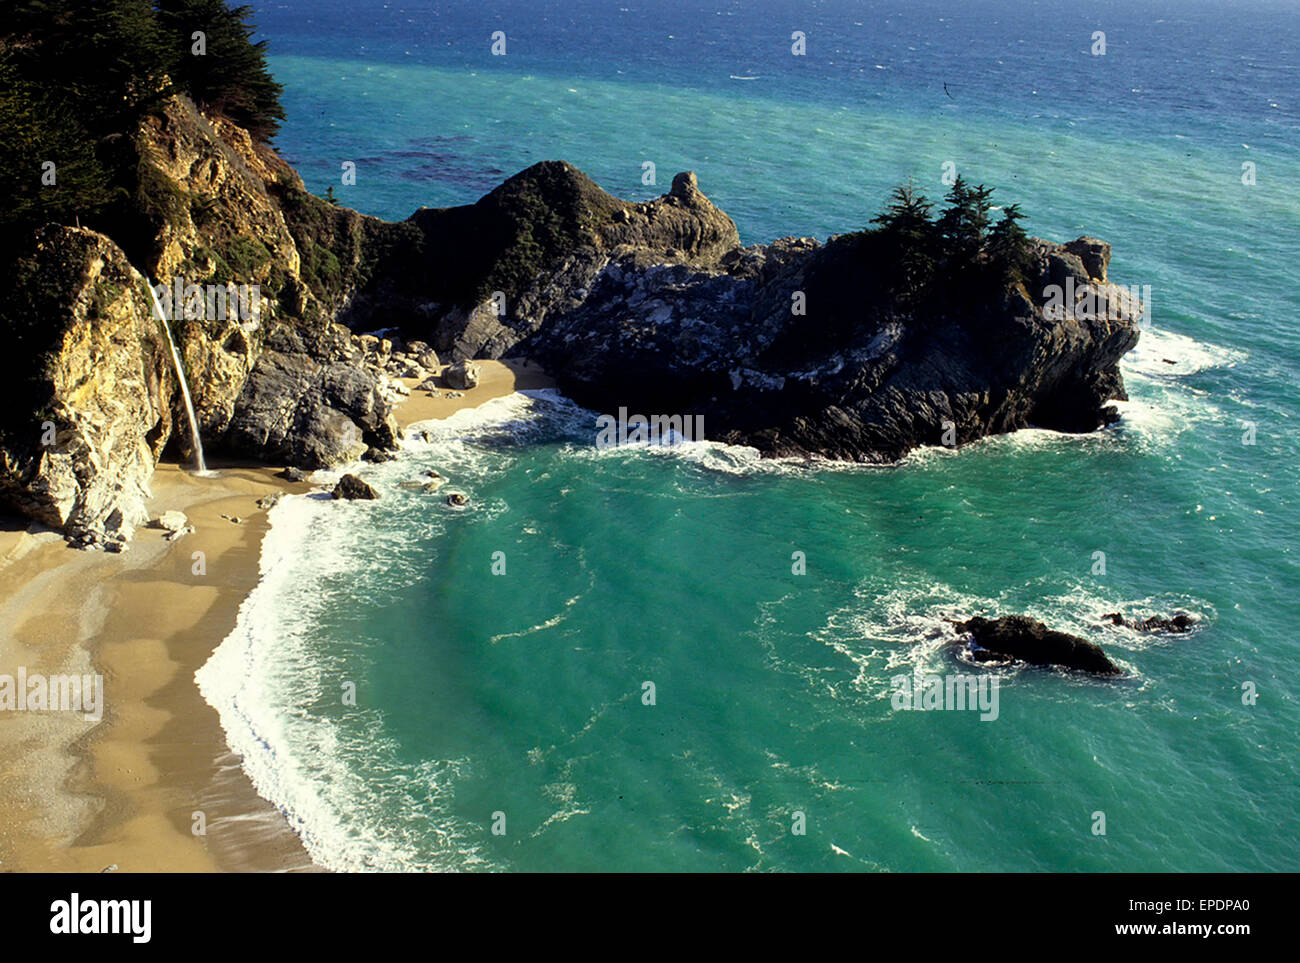 Mc Way Falls in the Julia Pfeiffer Burns State Park along the famous Highway 1, California. - Stock Image